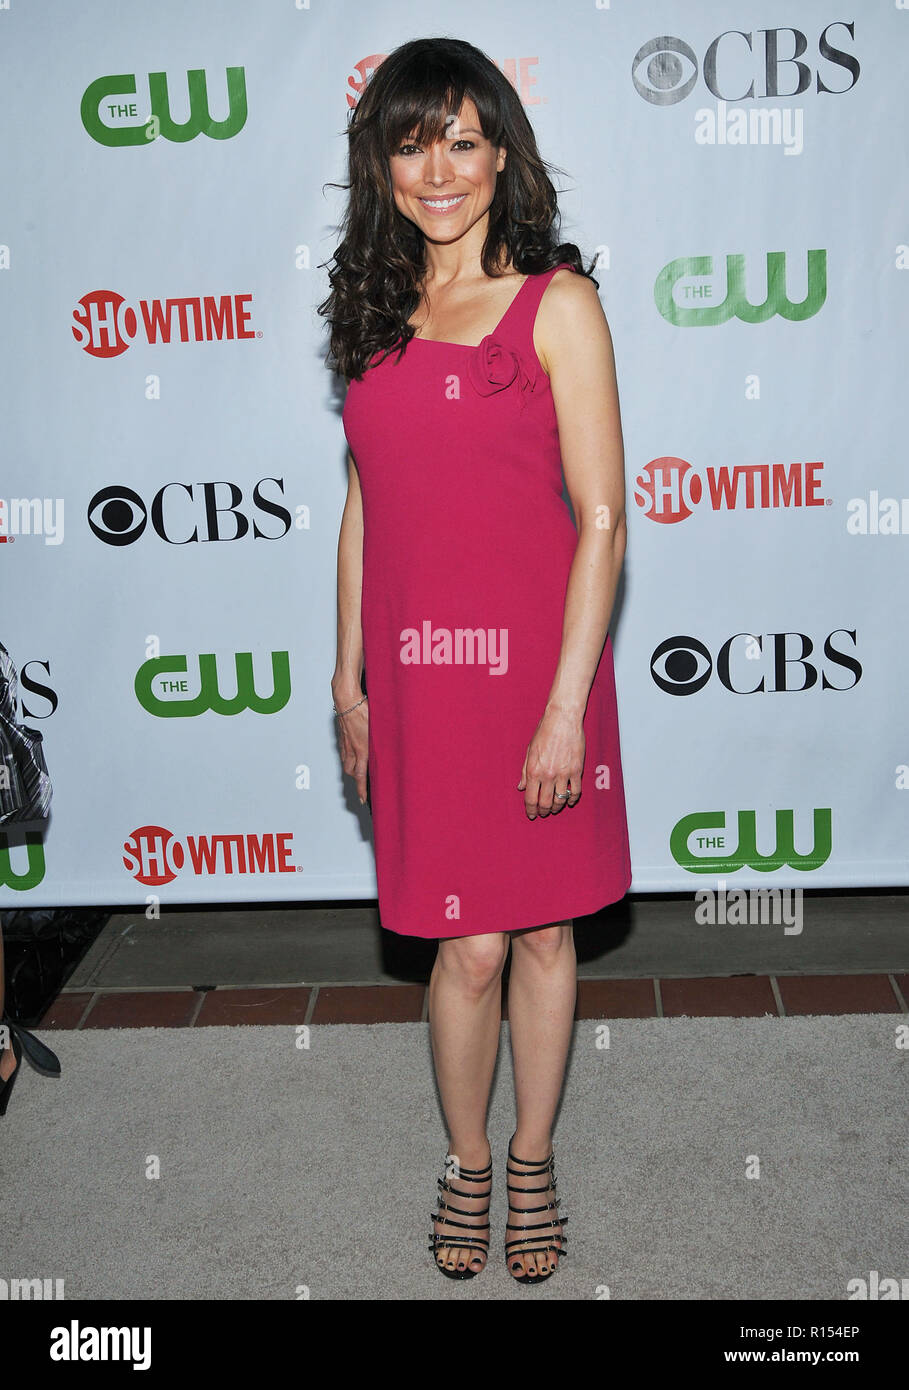 Liz Vassey Filmography, Movie List, TV Shows and Acting ...